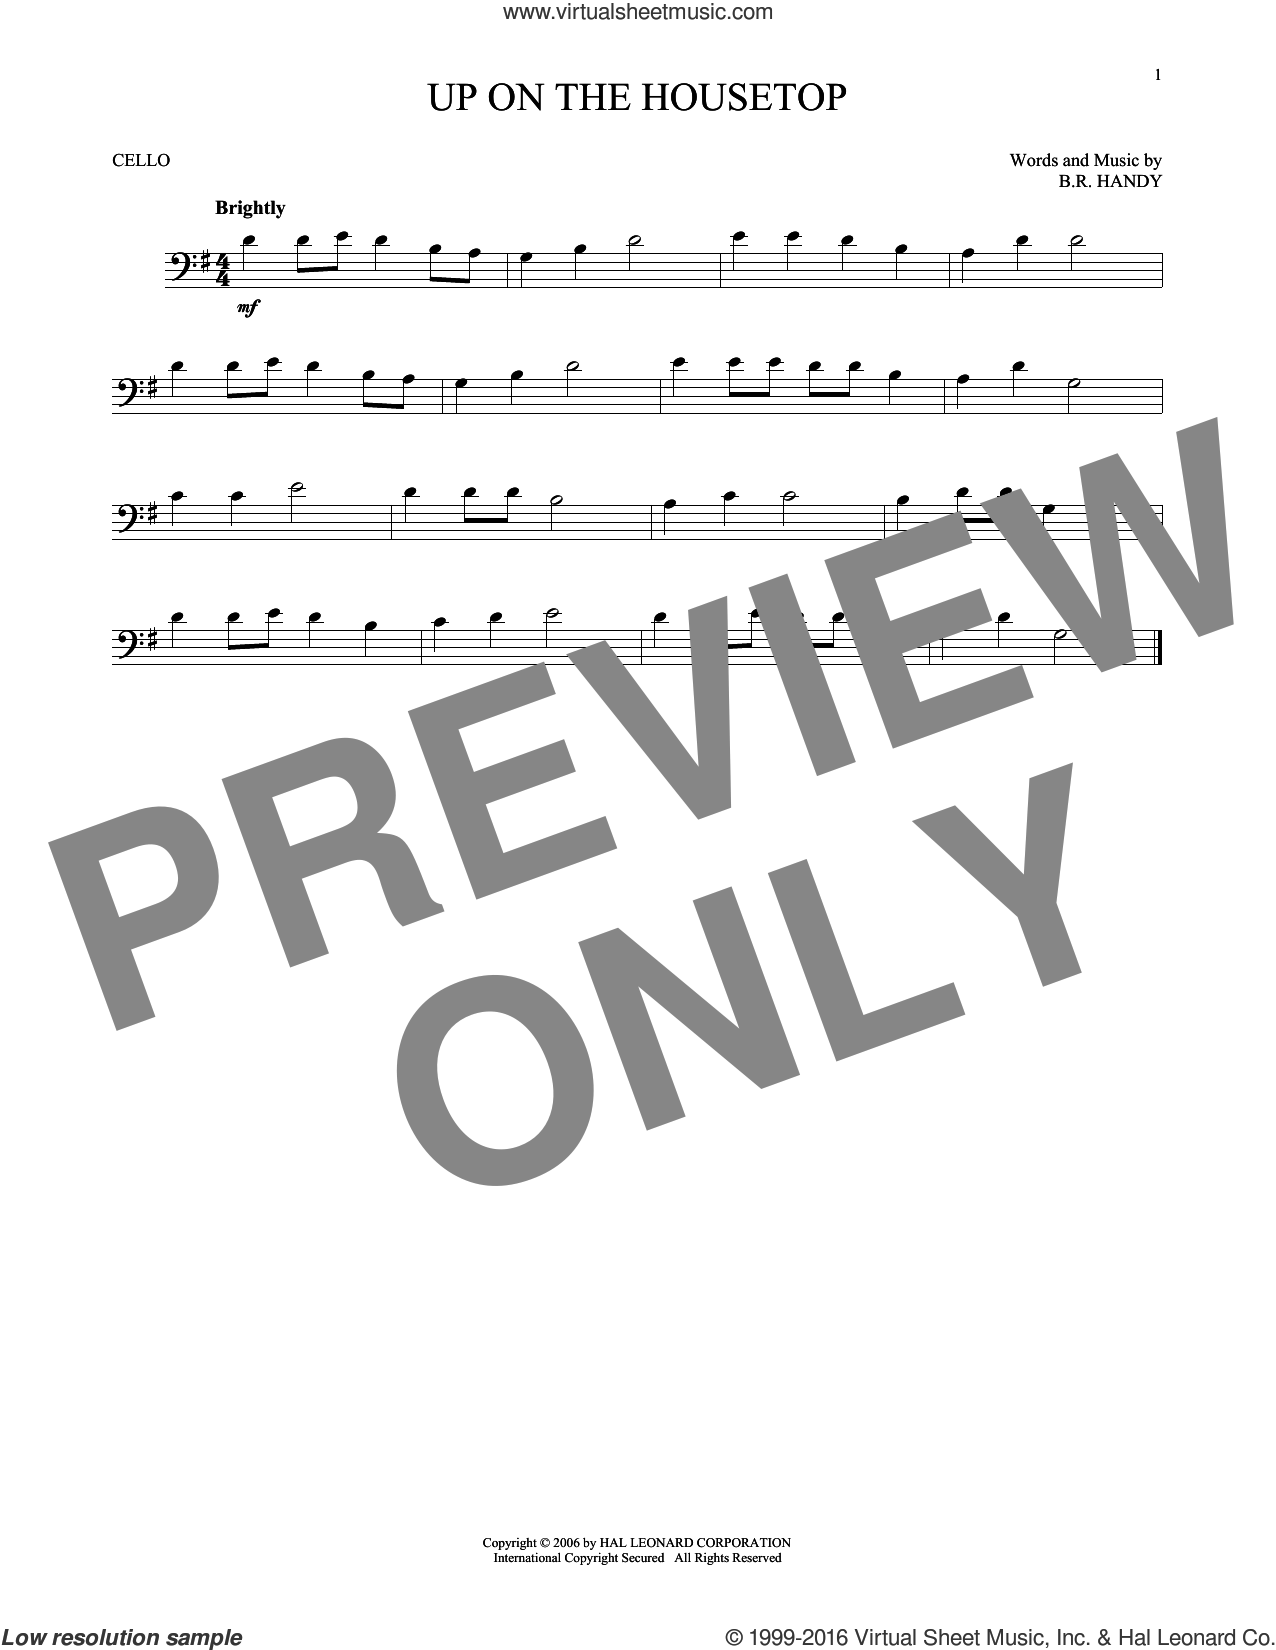 Up On The Housetop sheet music for cello solo by Benjamin Hanby